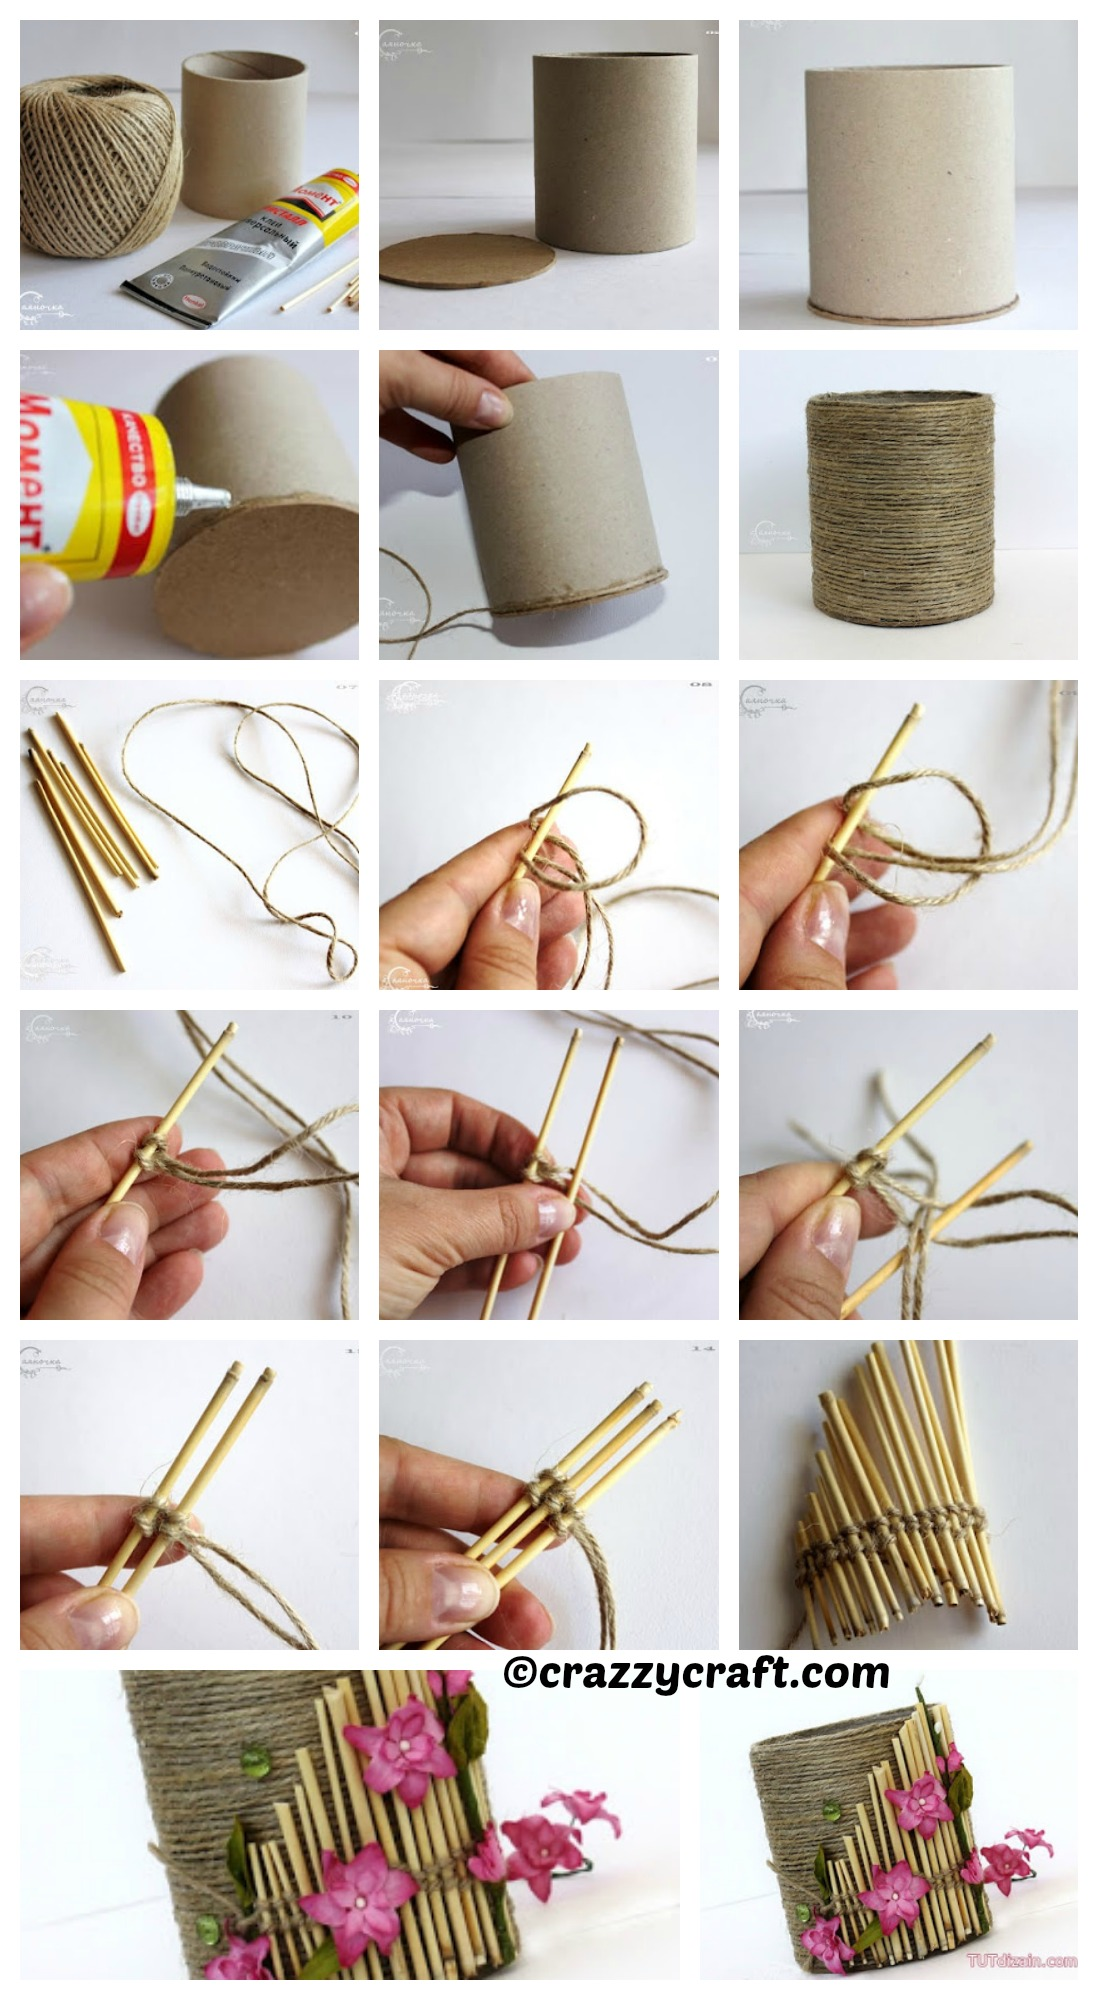 How to make a Yarn Pencil Holder